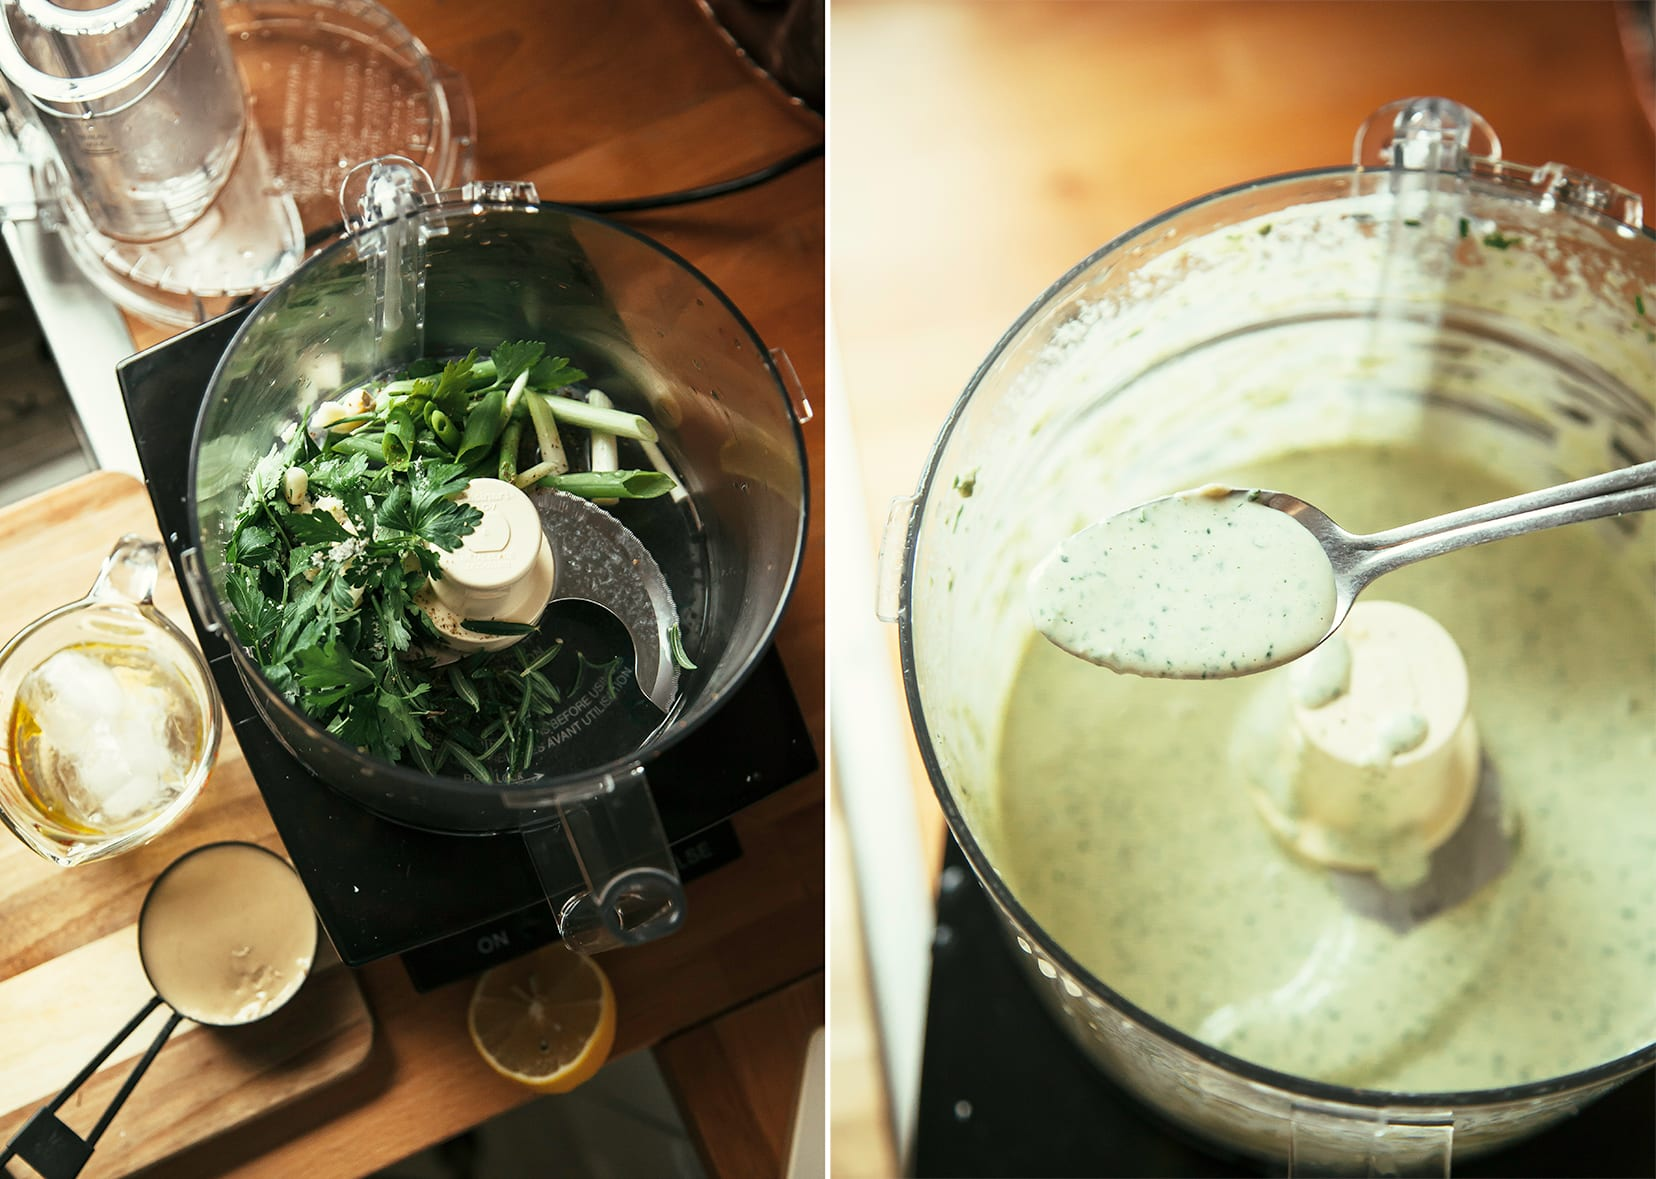 Two images show the ingredients for an herbed tahini sauce in the food processor and a completed, smooth and creamy sauce after blending.